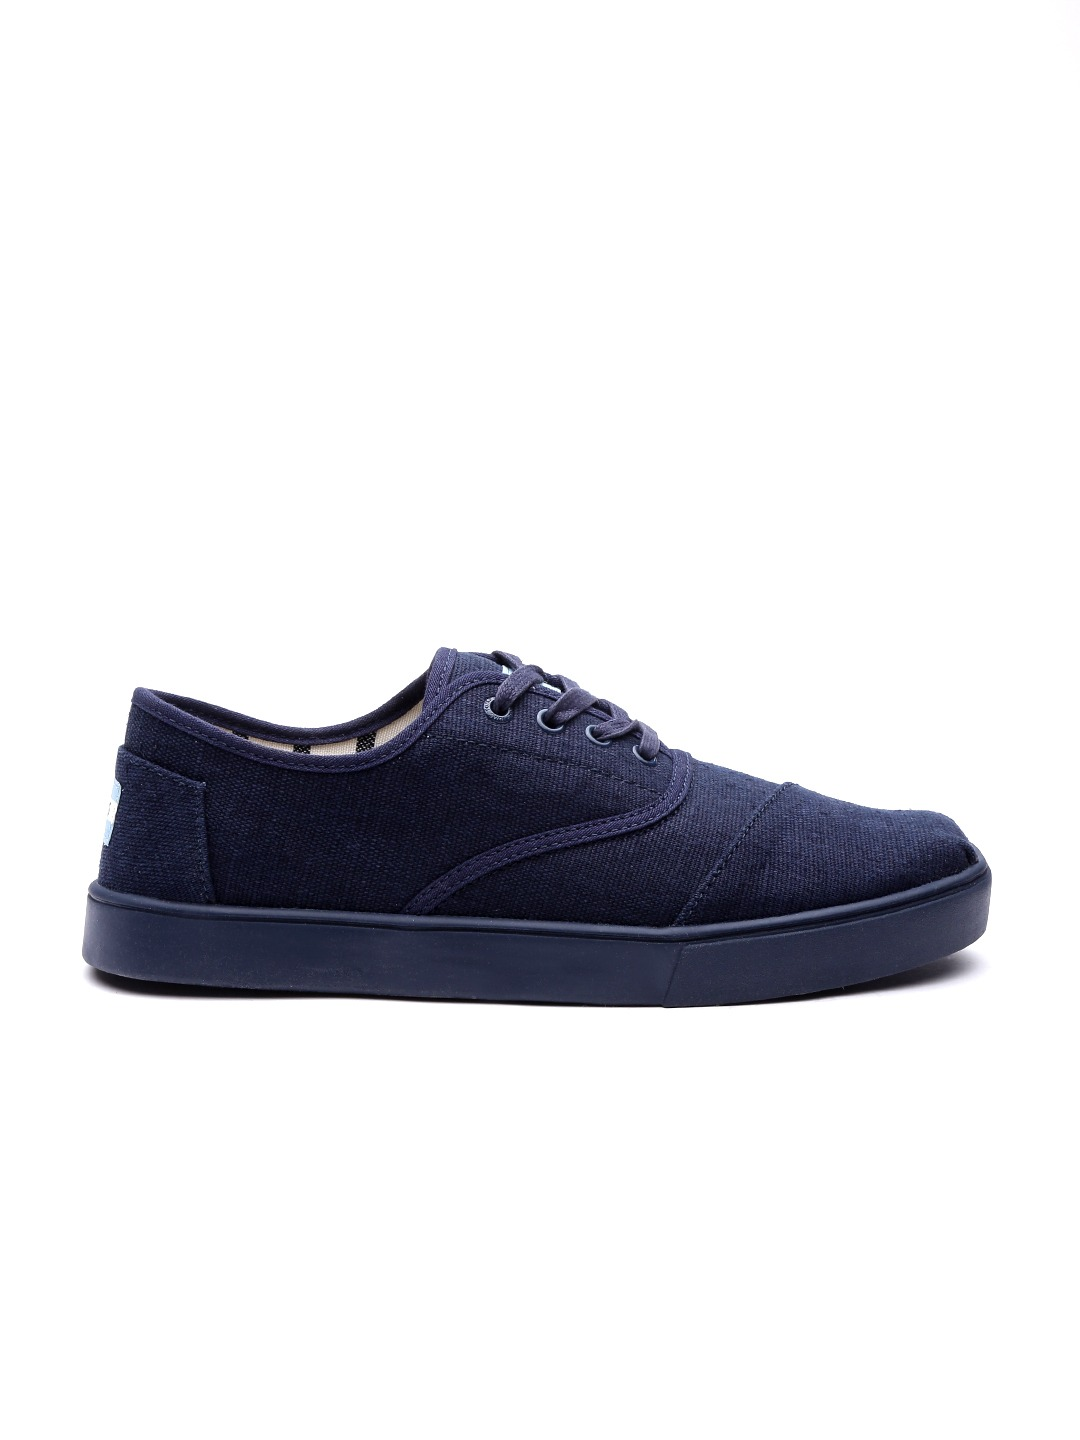 Navy Blue Solid Sneakers